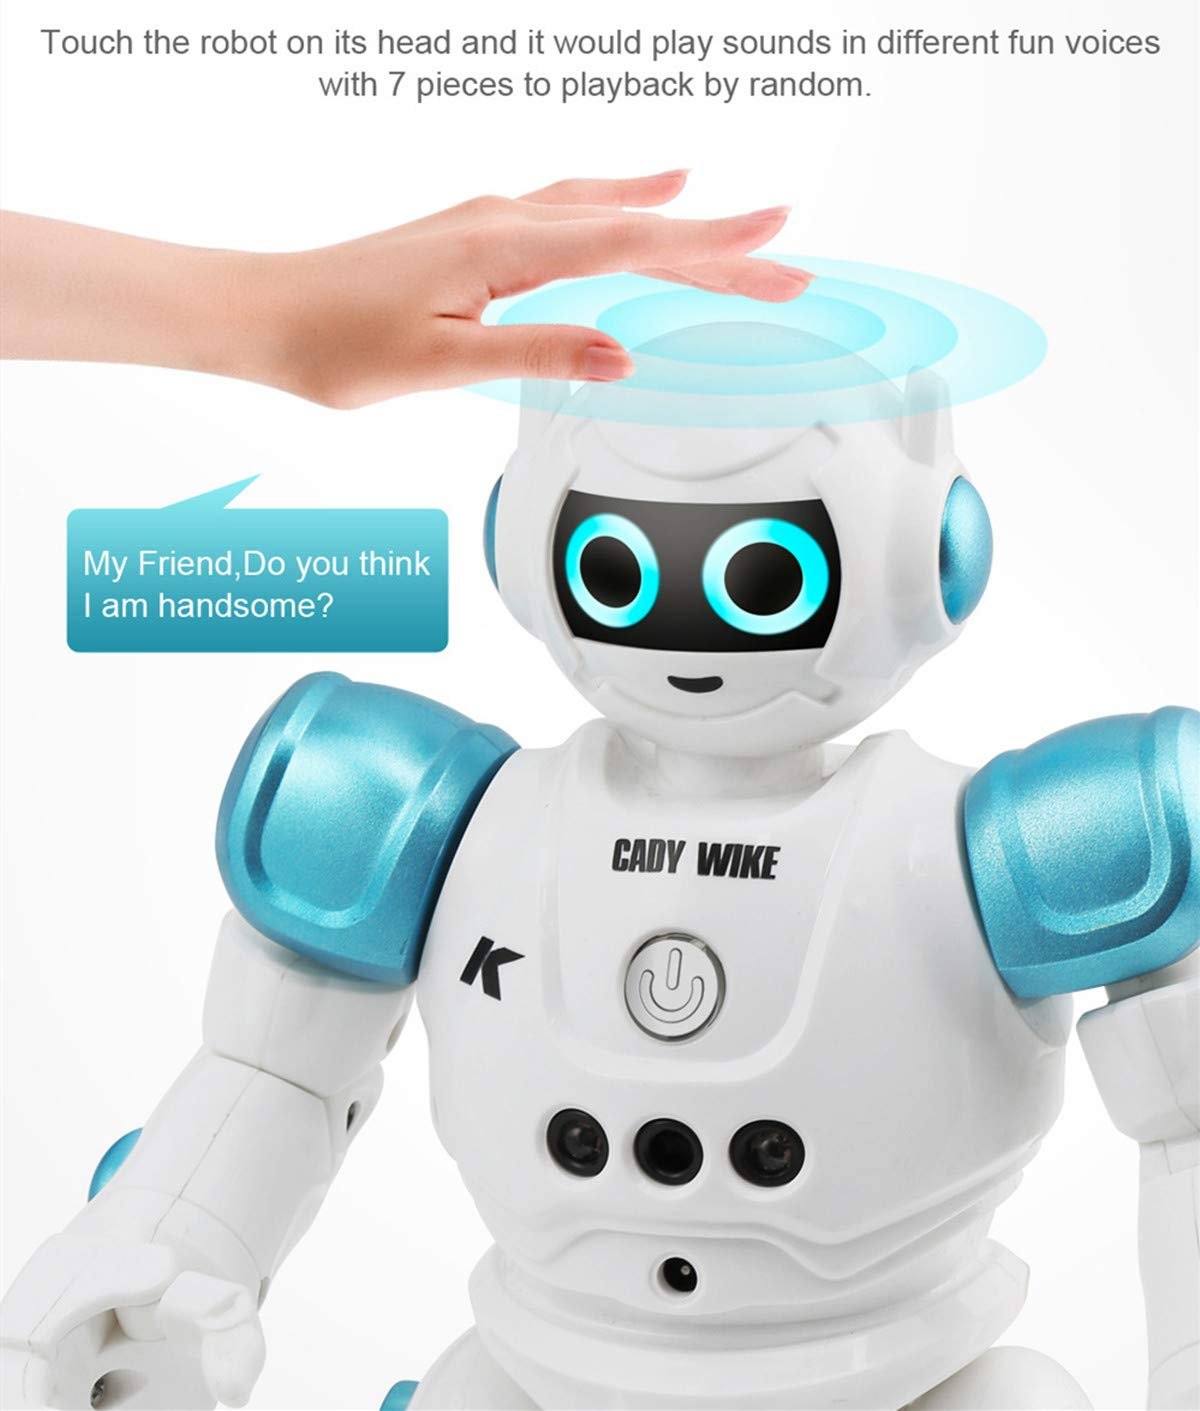 WEECOC Smart Robot Toys Gesture Control Remote Control Robot Kids Toys Birthday Can Singing Dancing Speaking Two Walking Models (Blue) by WEECOC (Image #3)